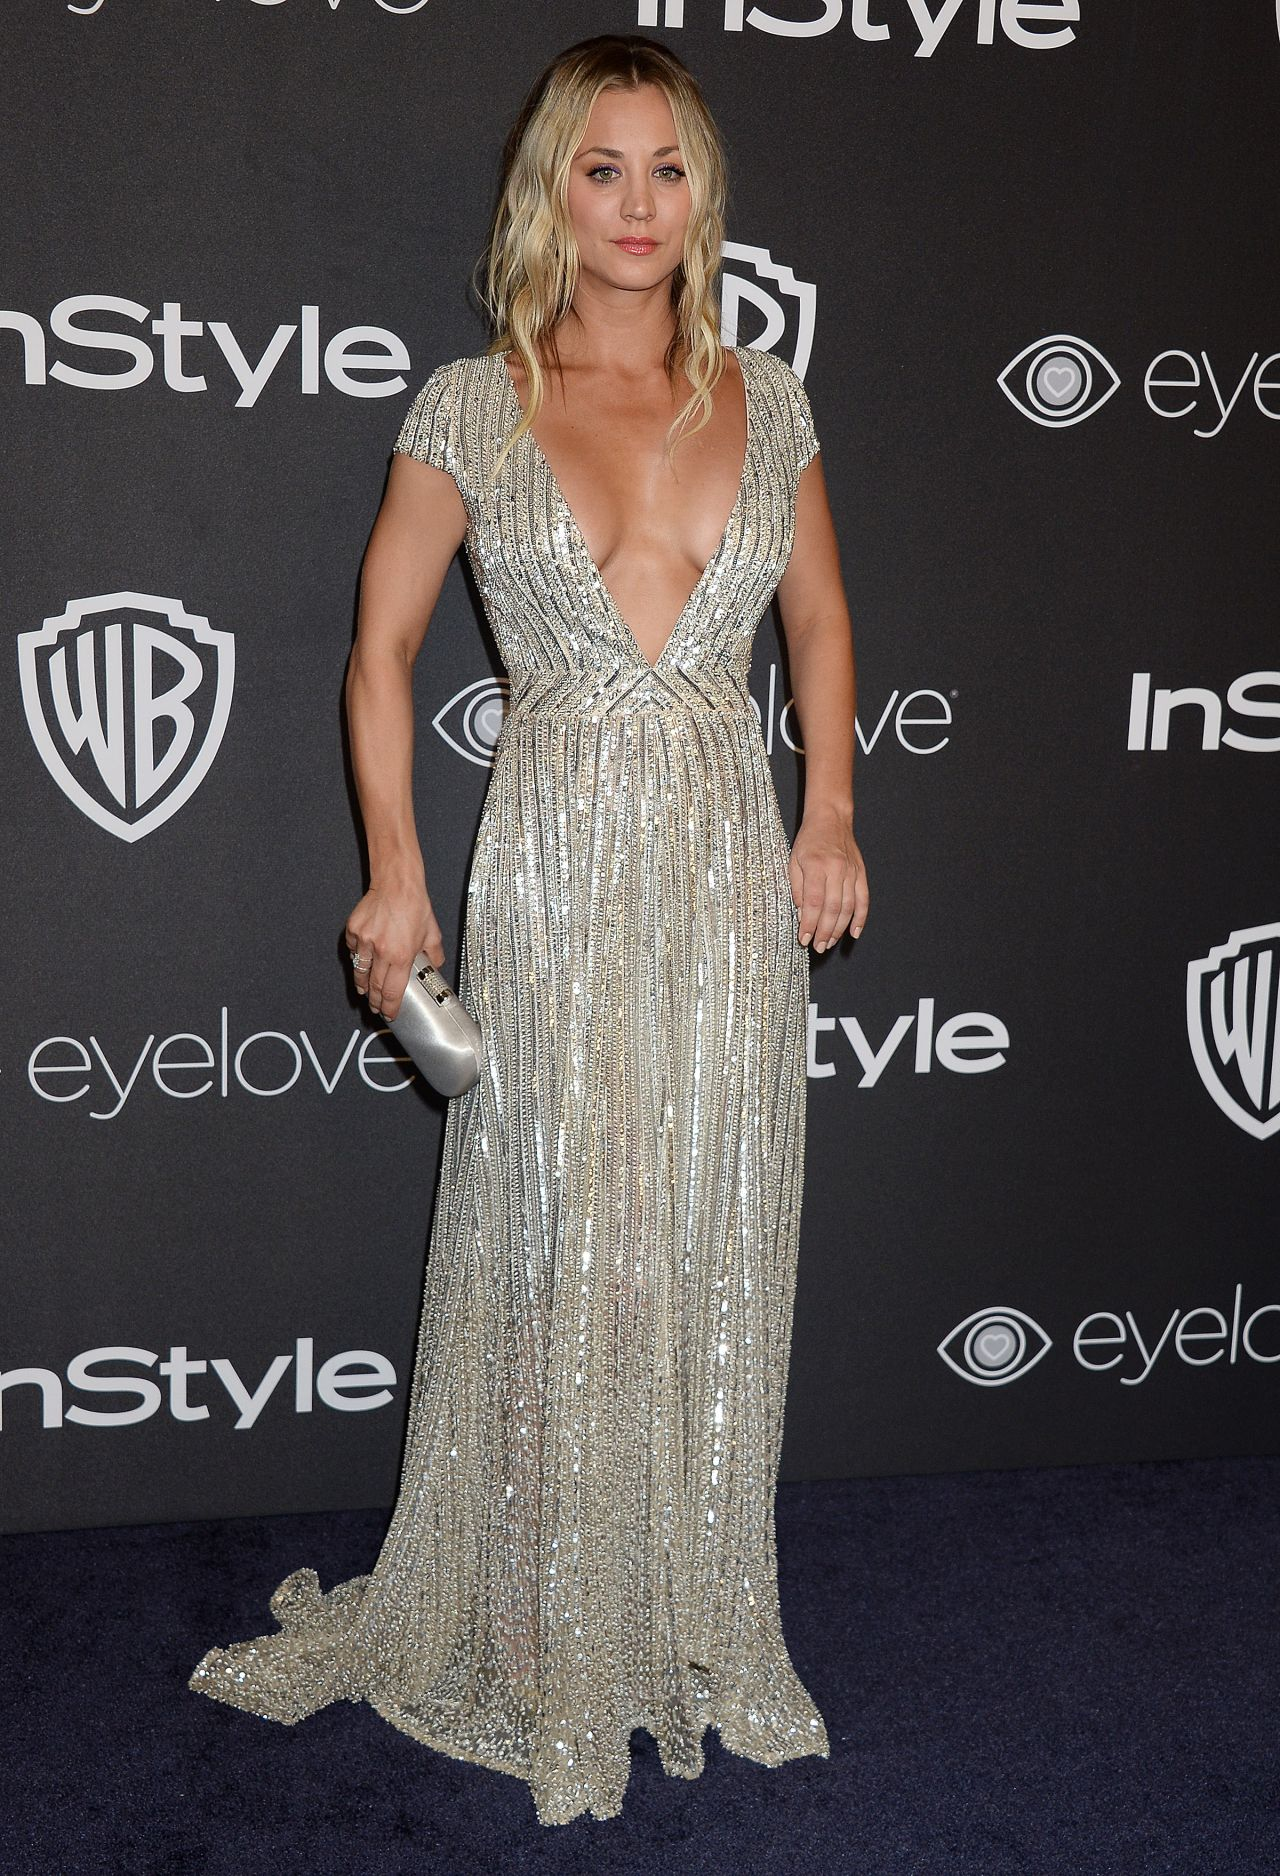 Kaley Cuoco Stunning at Golden Globes 2017, Amazing Cleavage